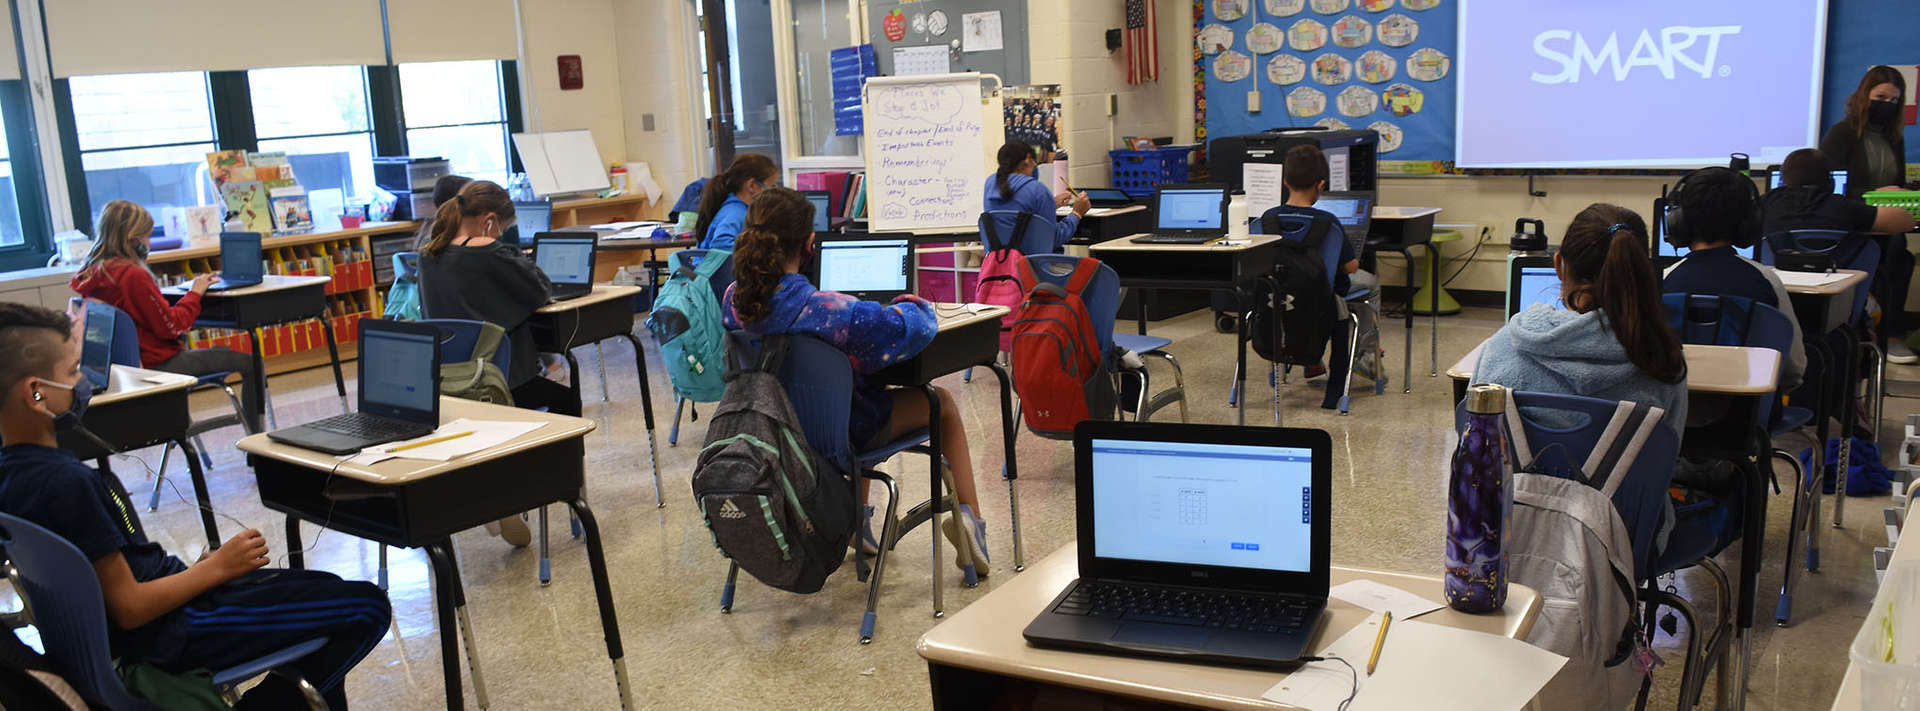 4th grade class work on laptops at their desks